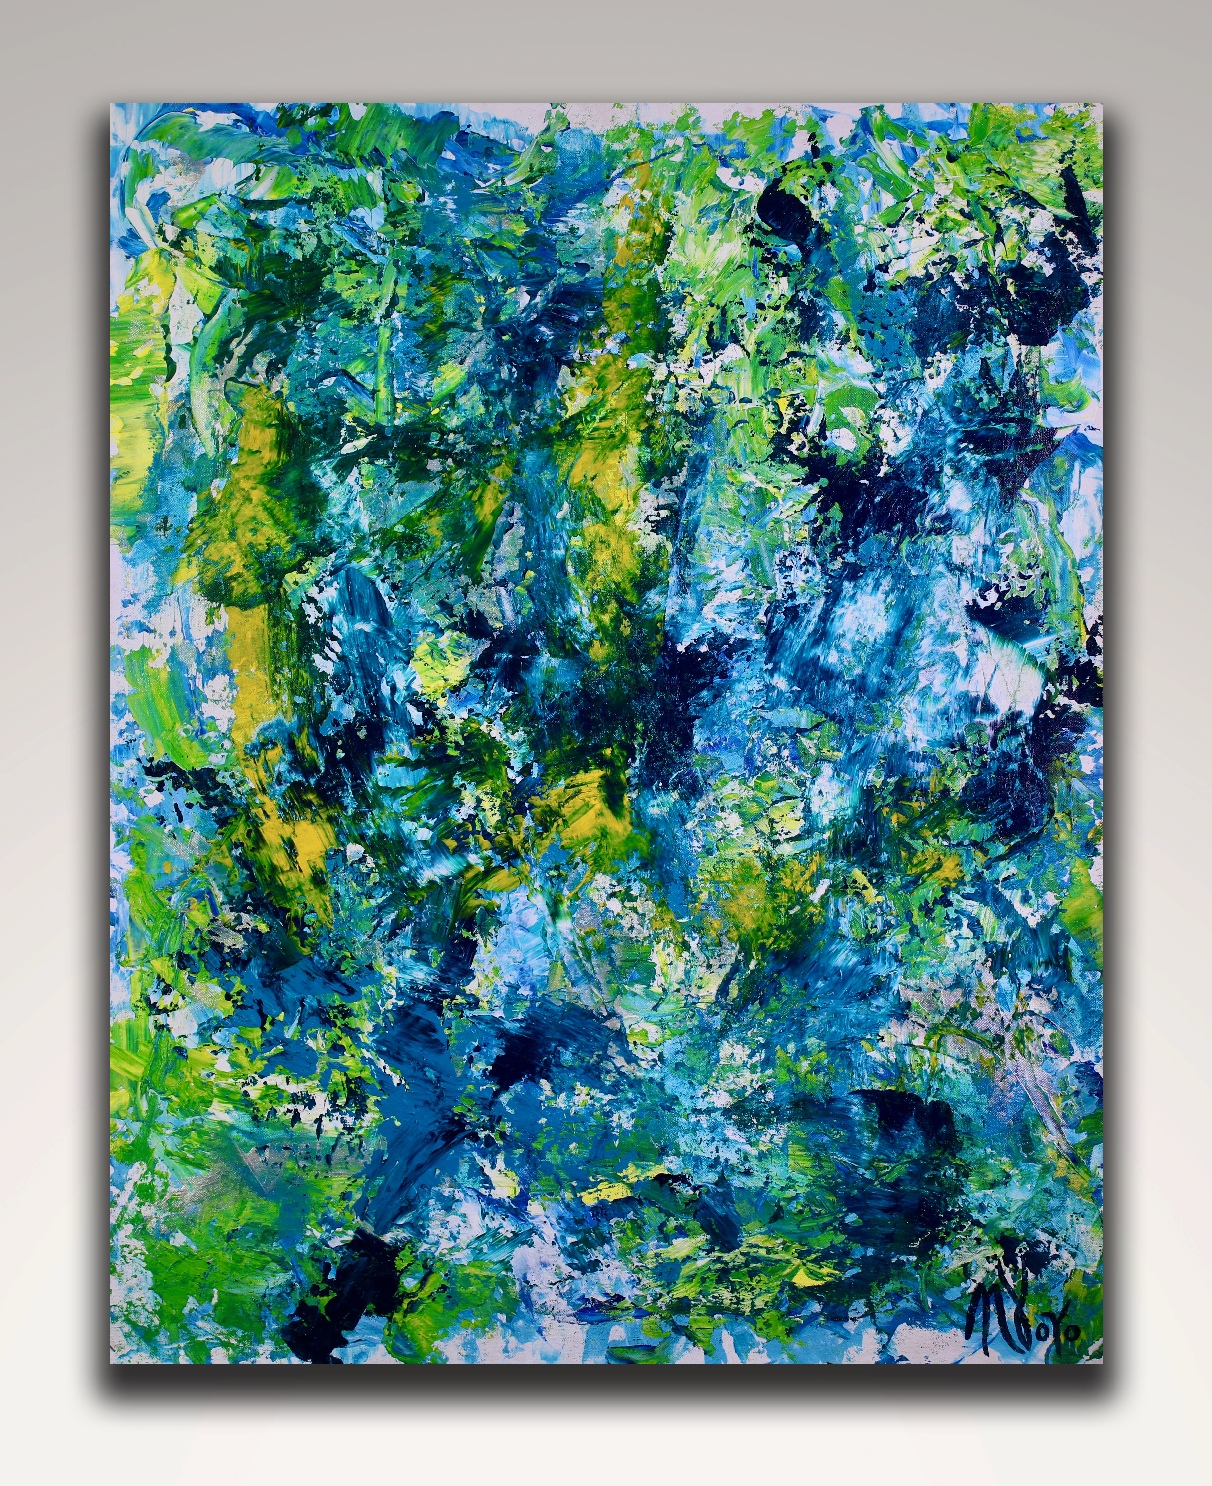 gestural blue flow 2 (2018) abstract art Acrylic painting by Nestor Toro